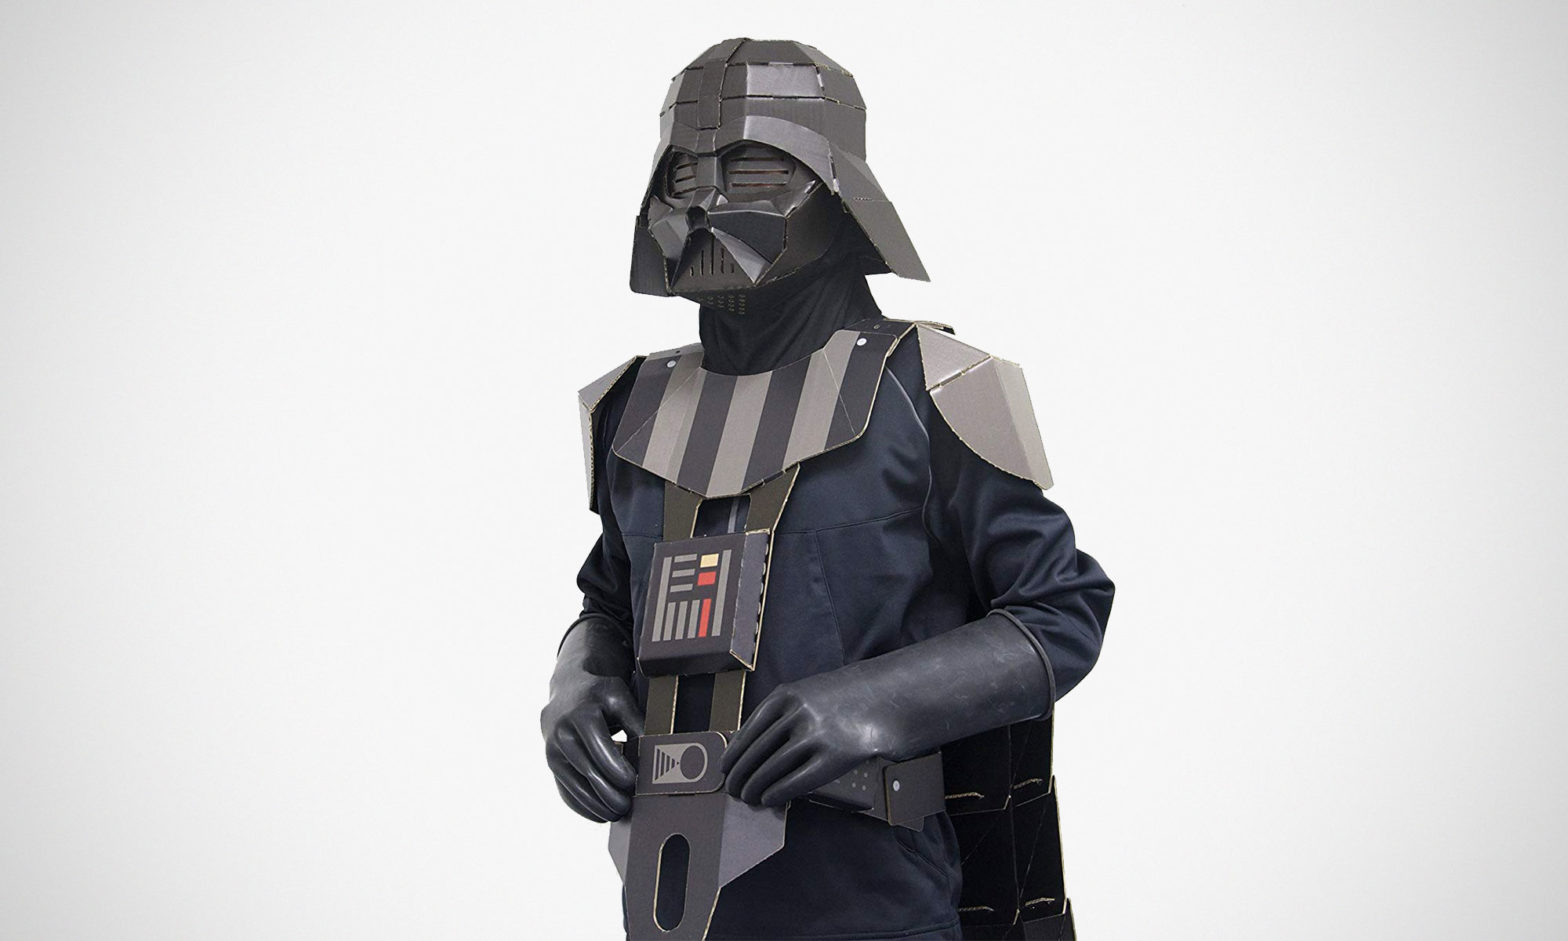 Showa Note Cardboard Darth Vader Costume